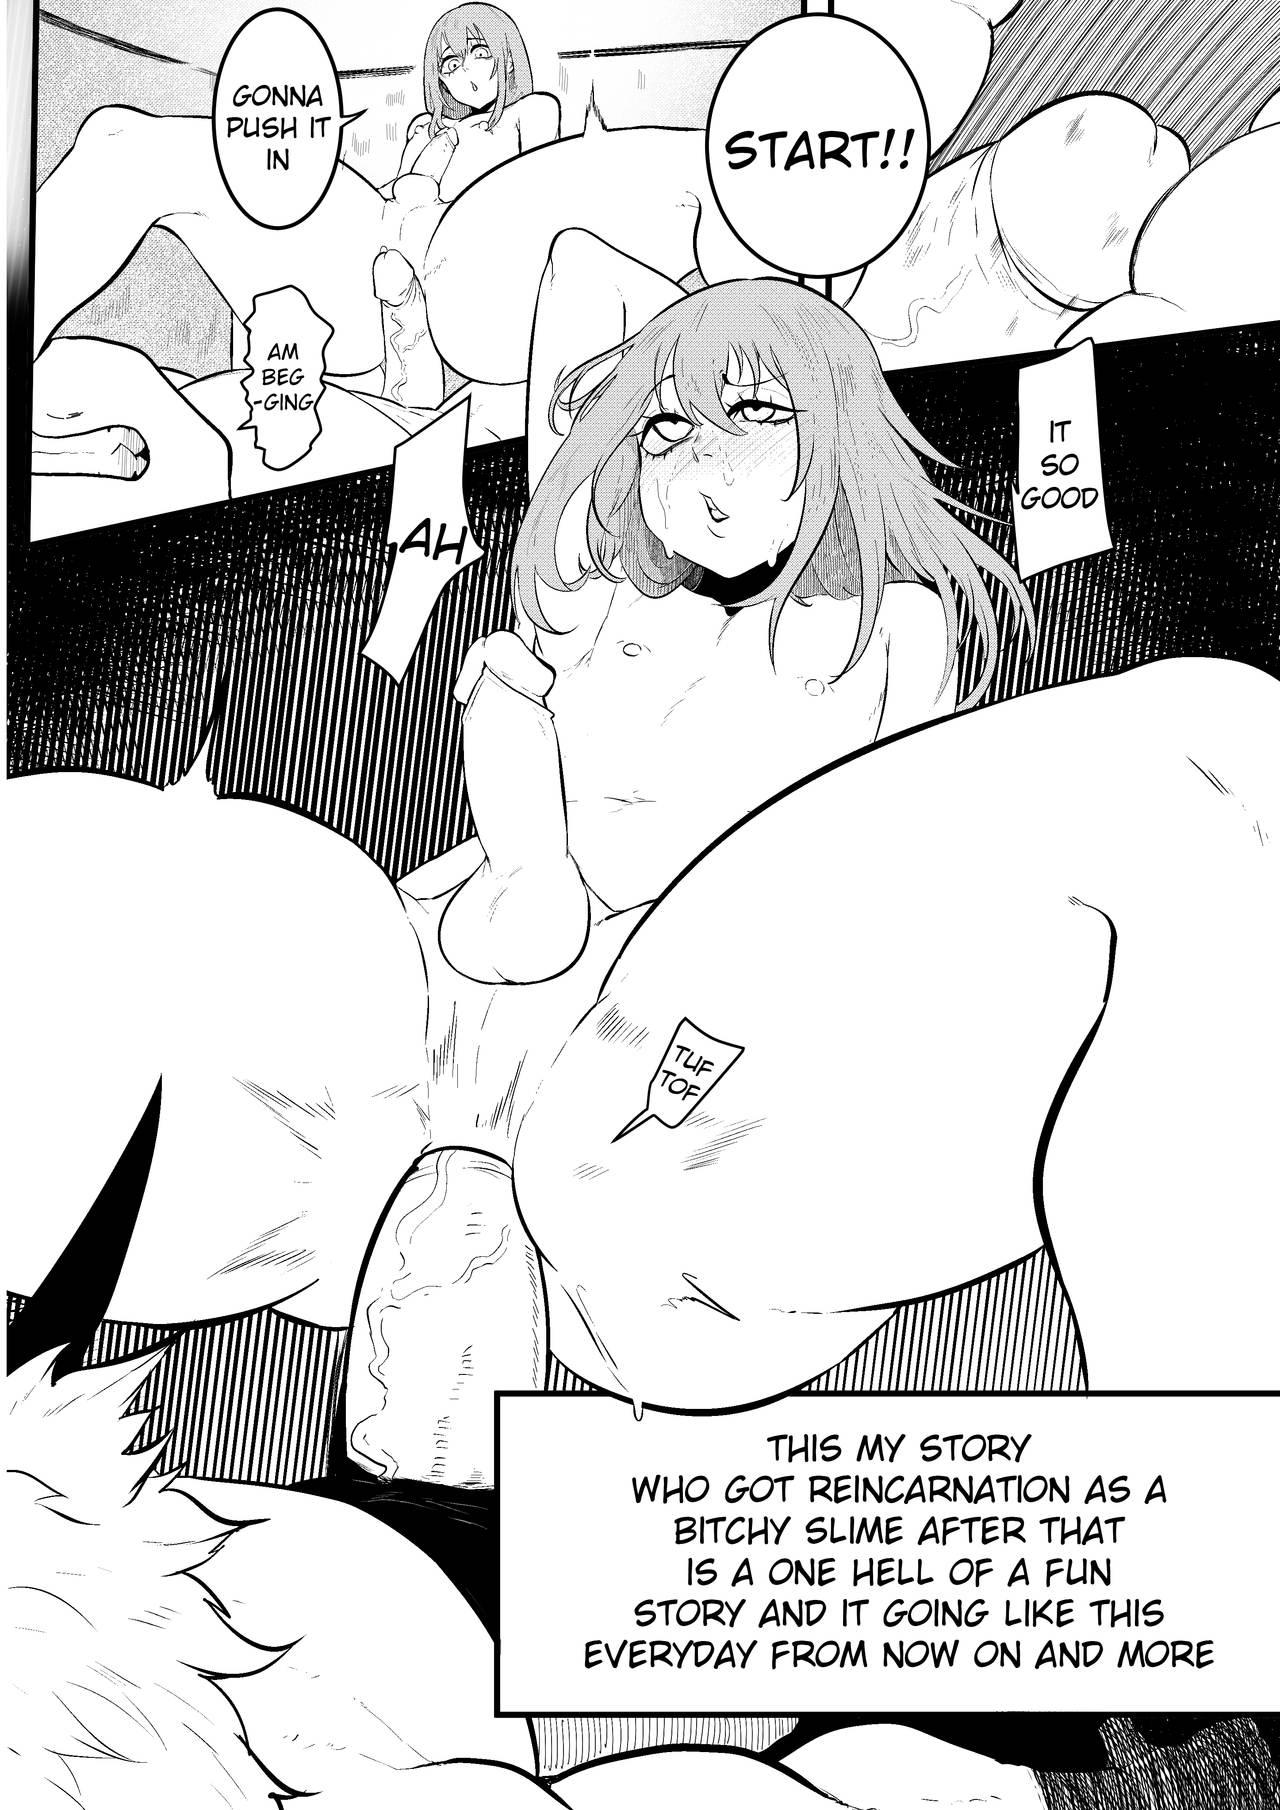 That time I got reincarnated as a bitchy slime 22